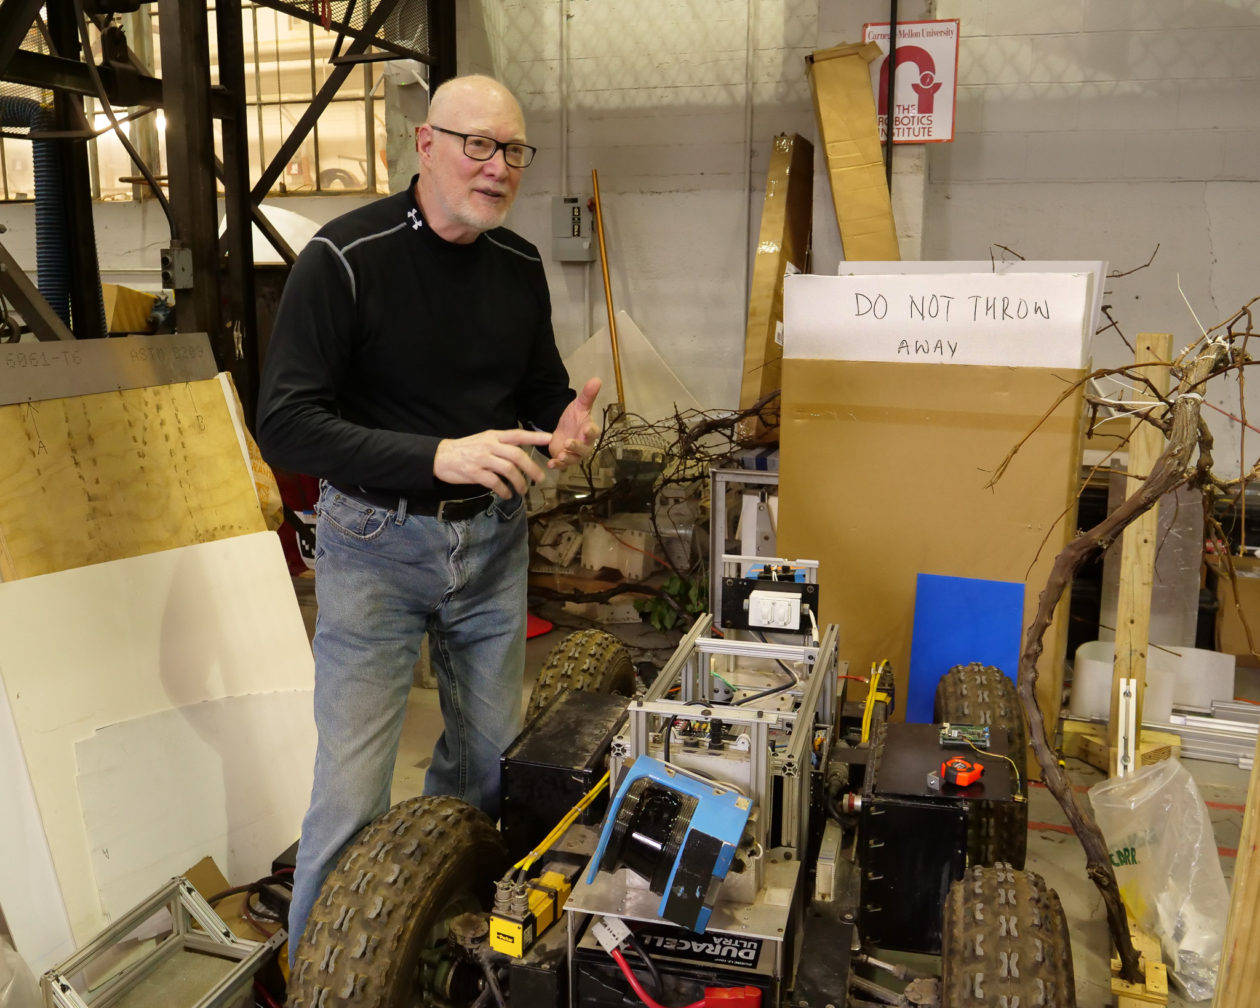 Robotics Pioneer Red Whittaker Wants To Put A Robot On The Moon And